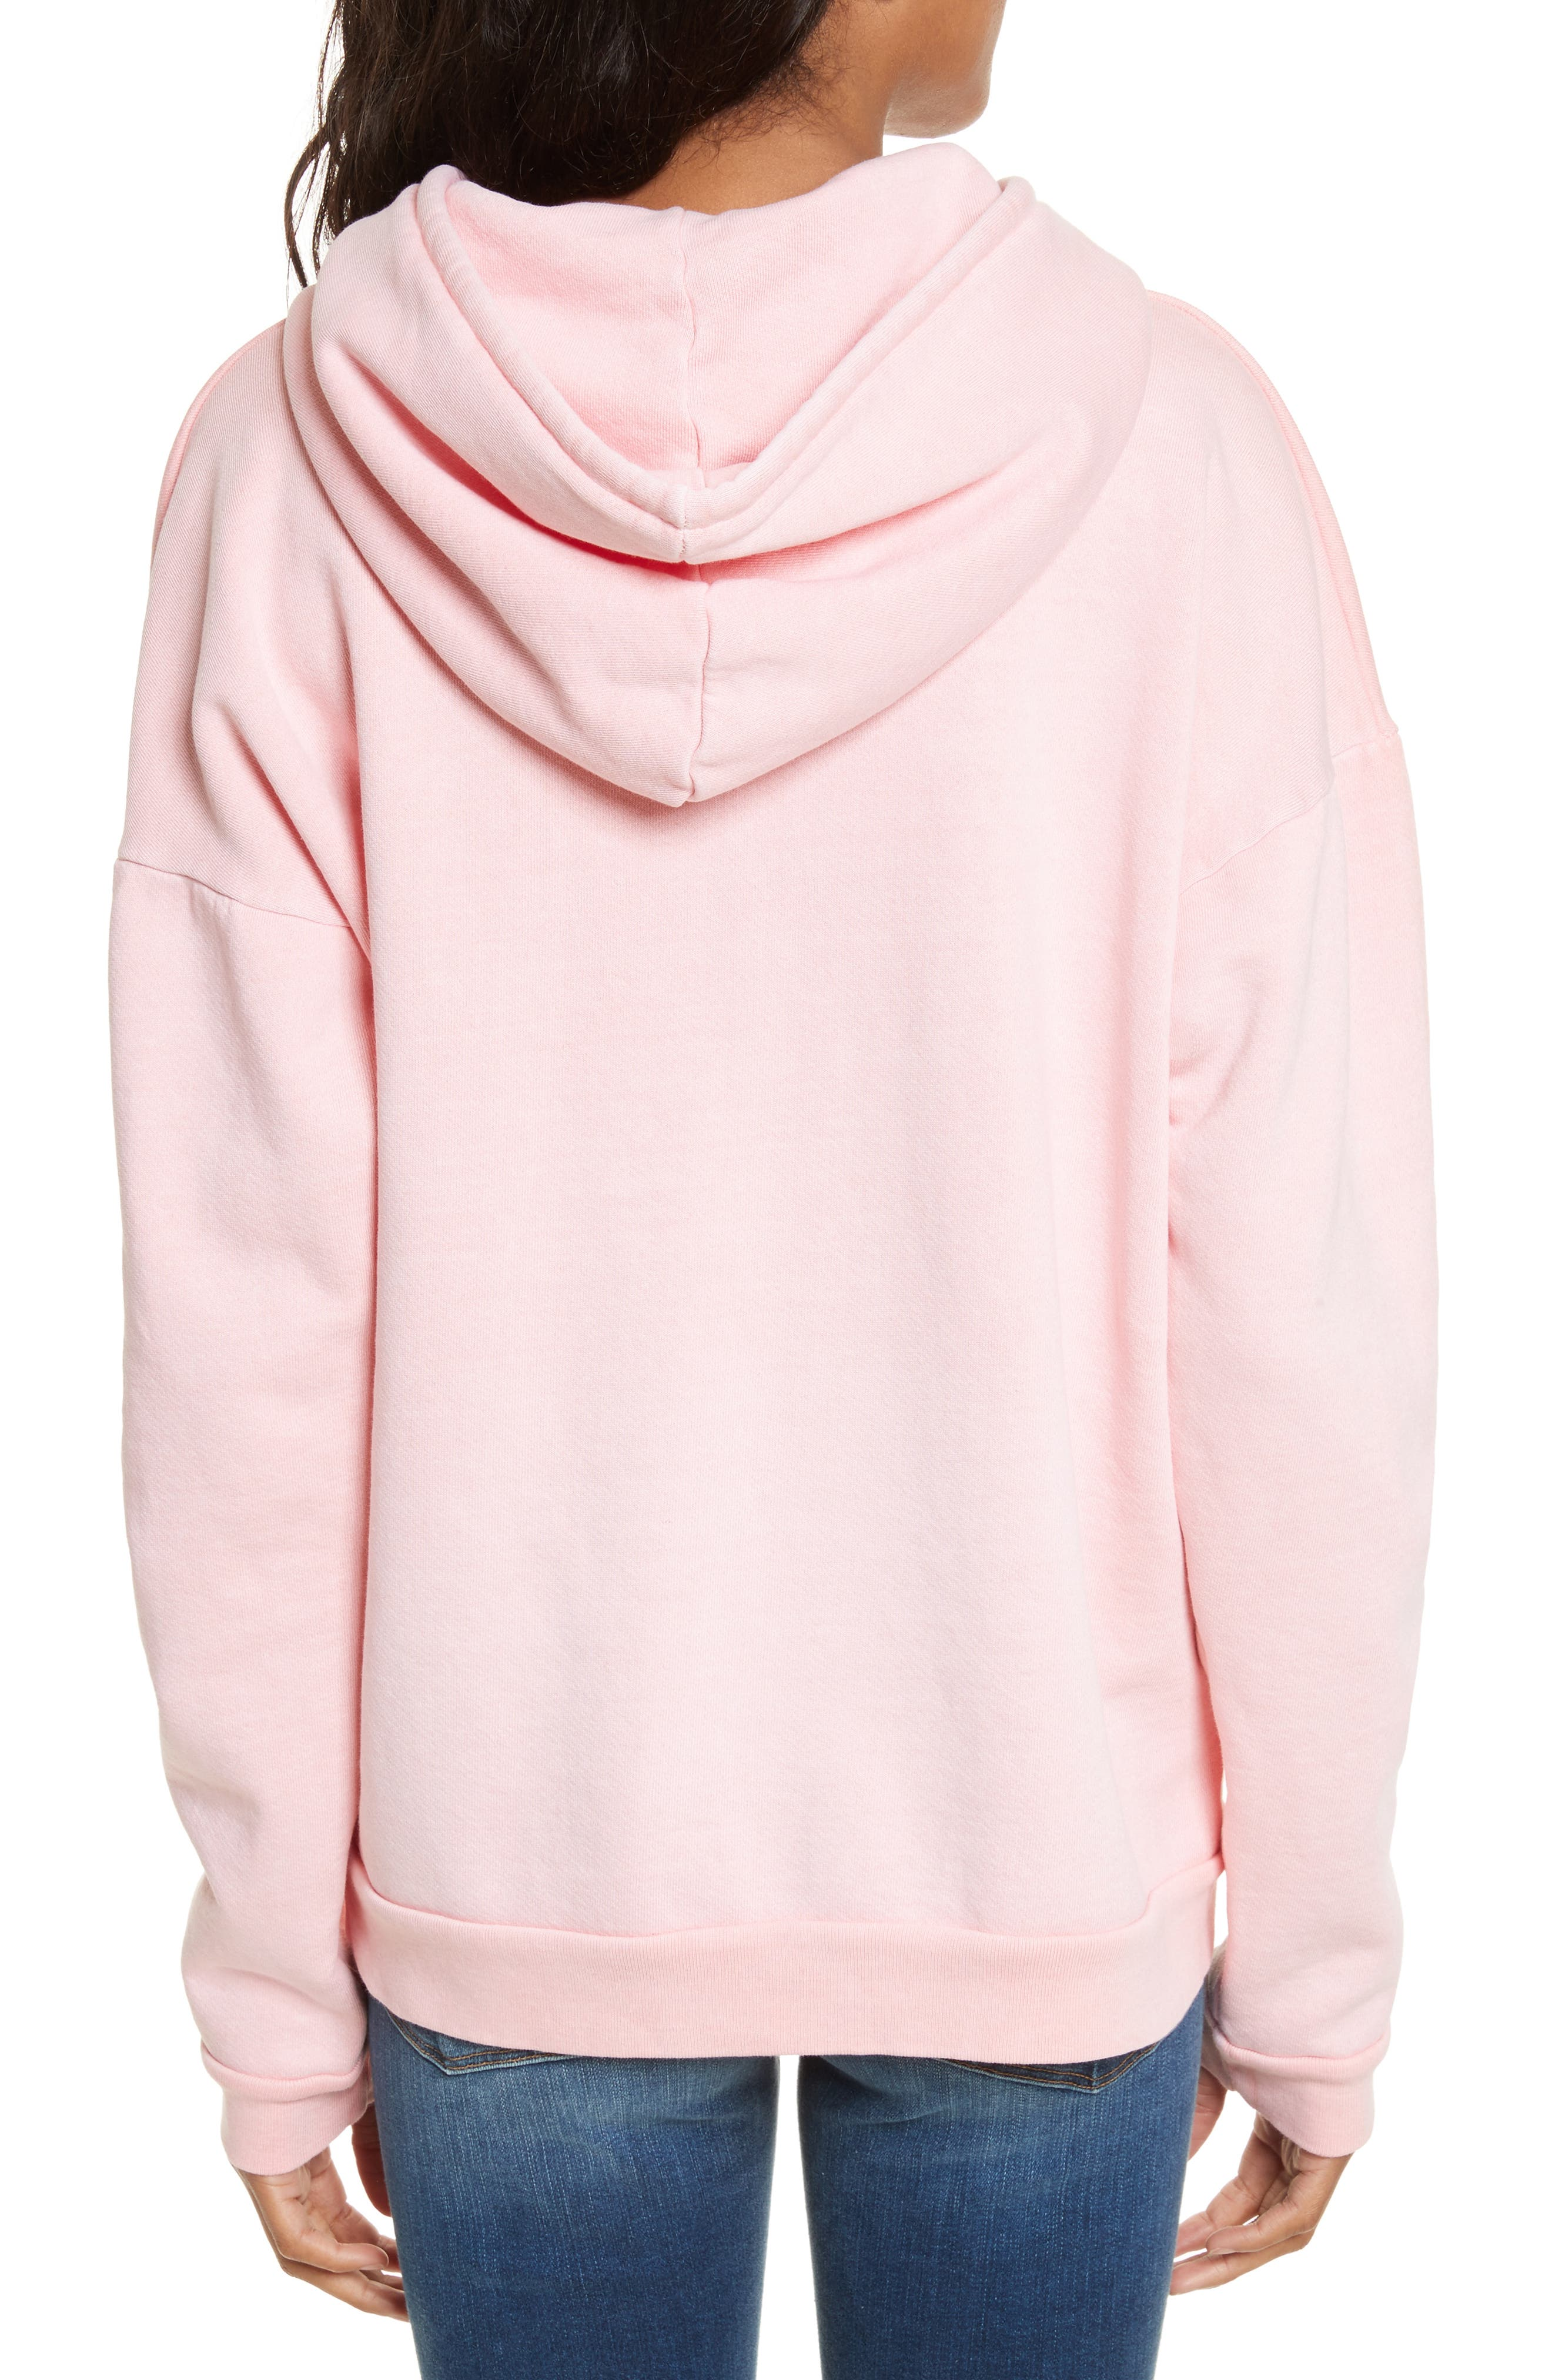 Oversize Hoodie,                             Alternate thumbnail 2, color,                             Faded Light Pink